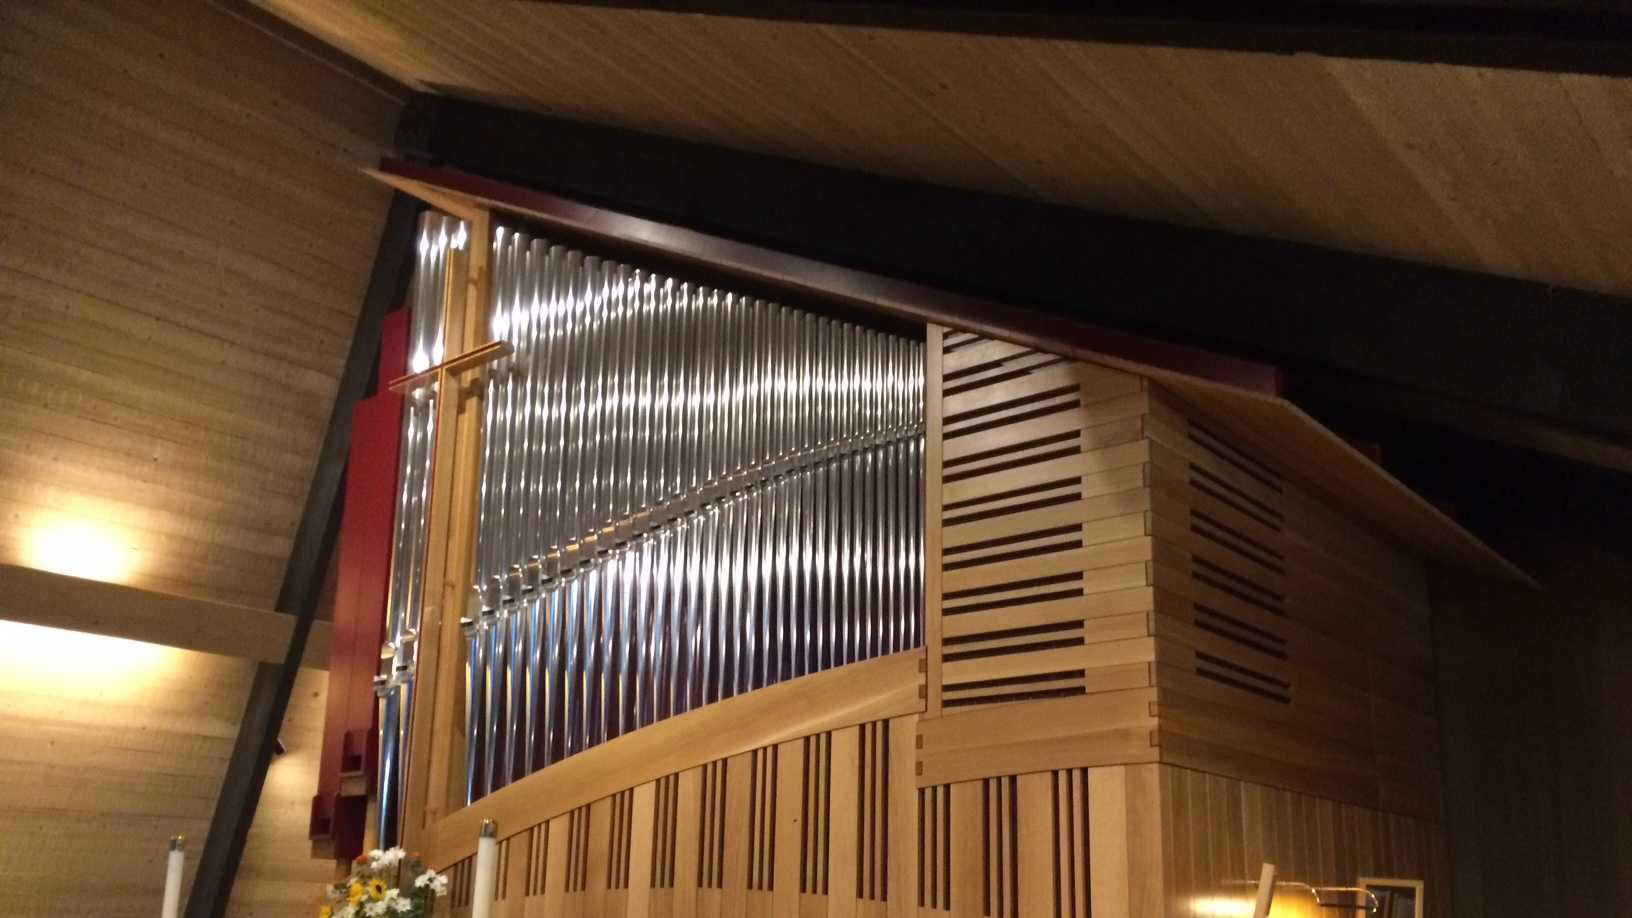 Carmel Valley church builds new pipe organ